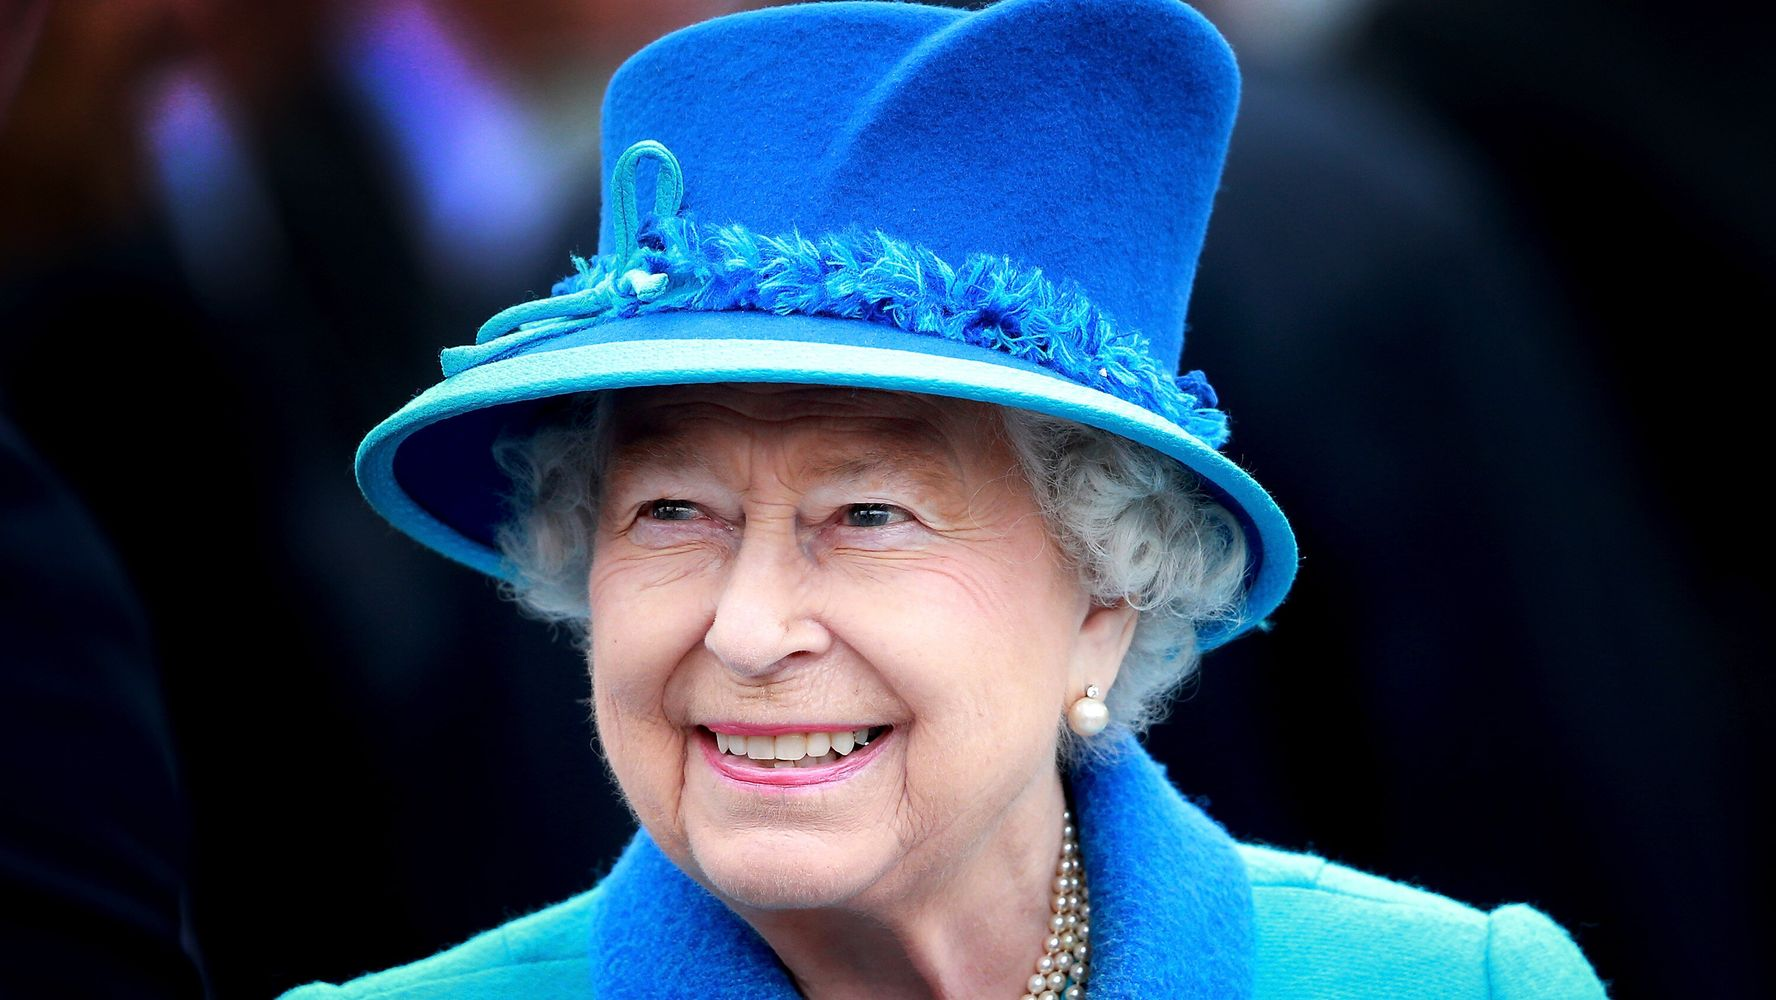 Queen Elizabeth's Platinum Jubilee Plans Seemingly Silence Rumors Of Stepping Down